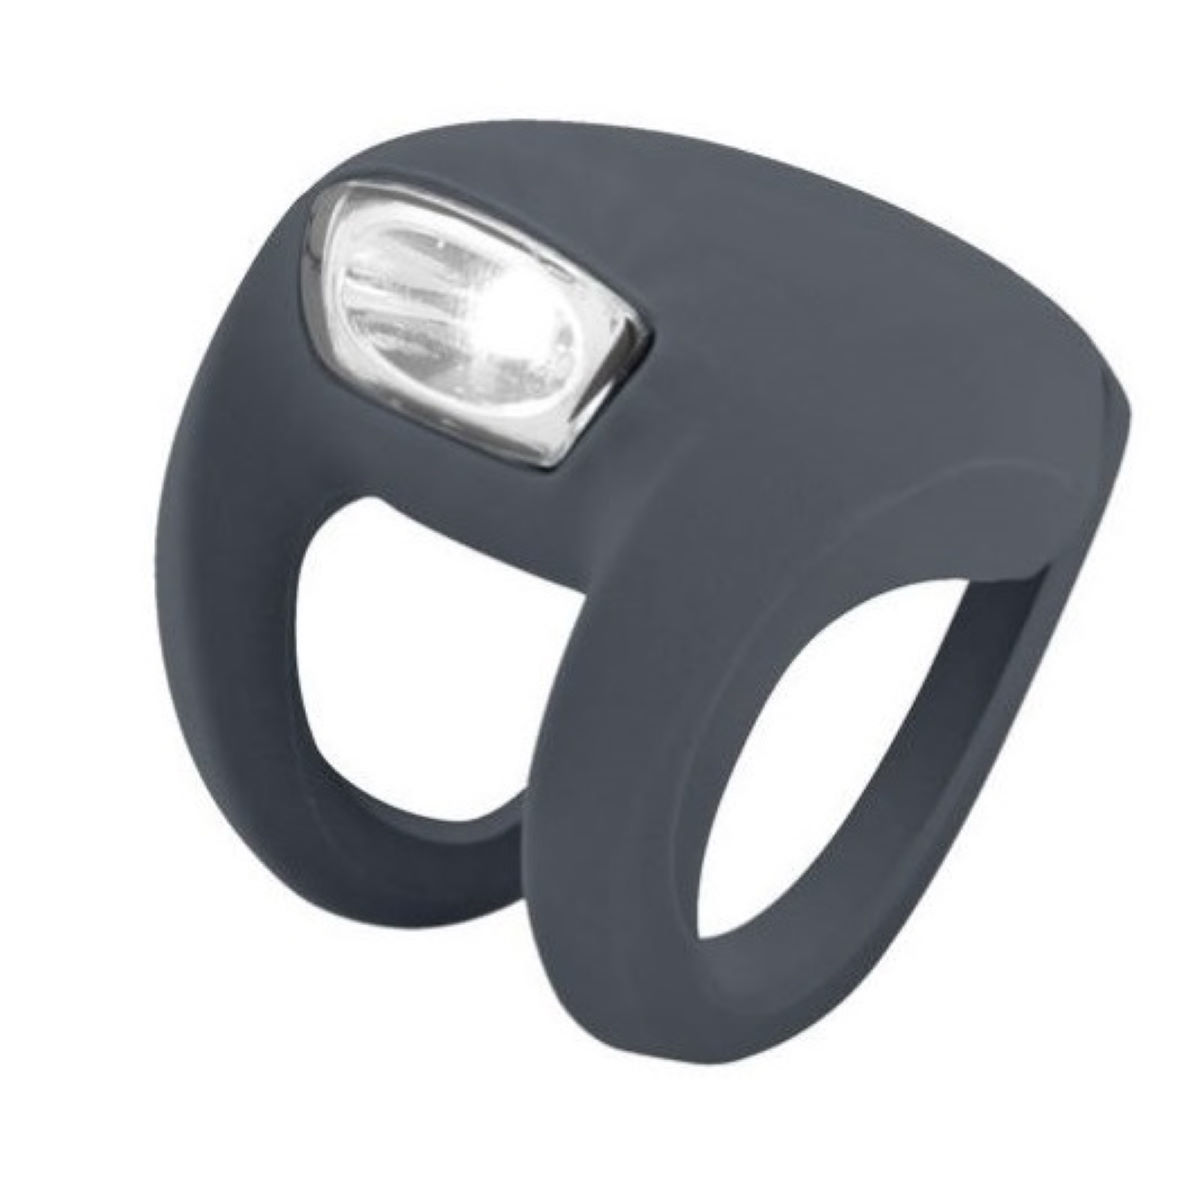 Knog Light Frog Strobe Front Lights - Price varies with colour.